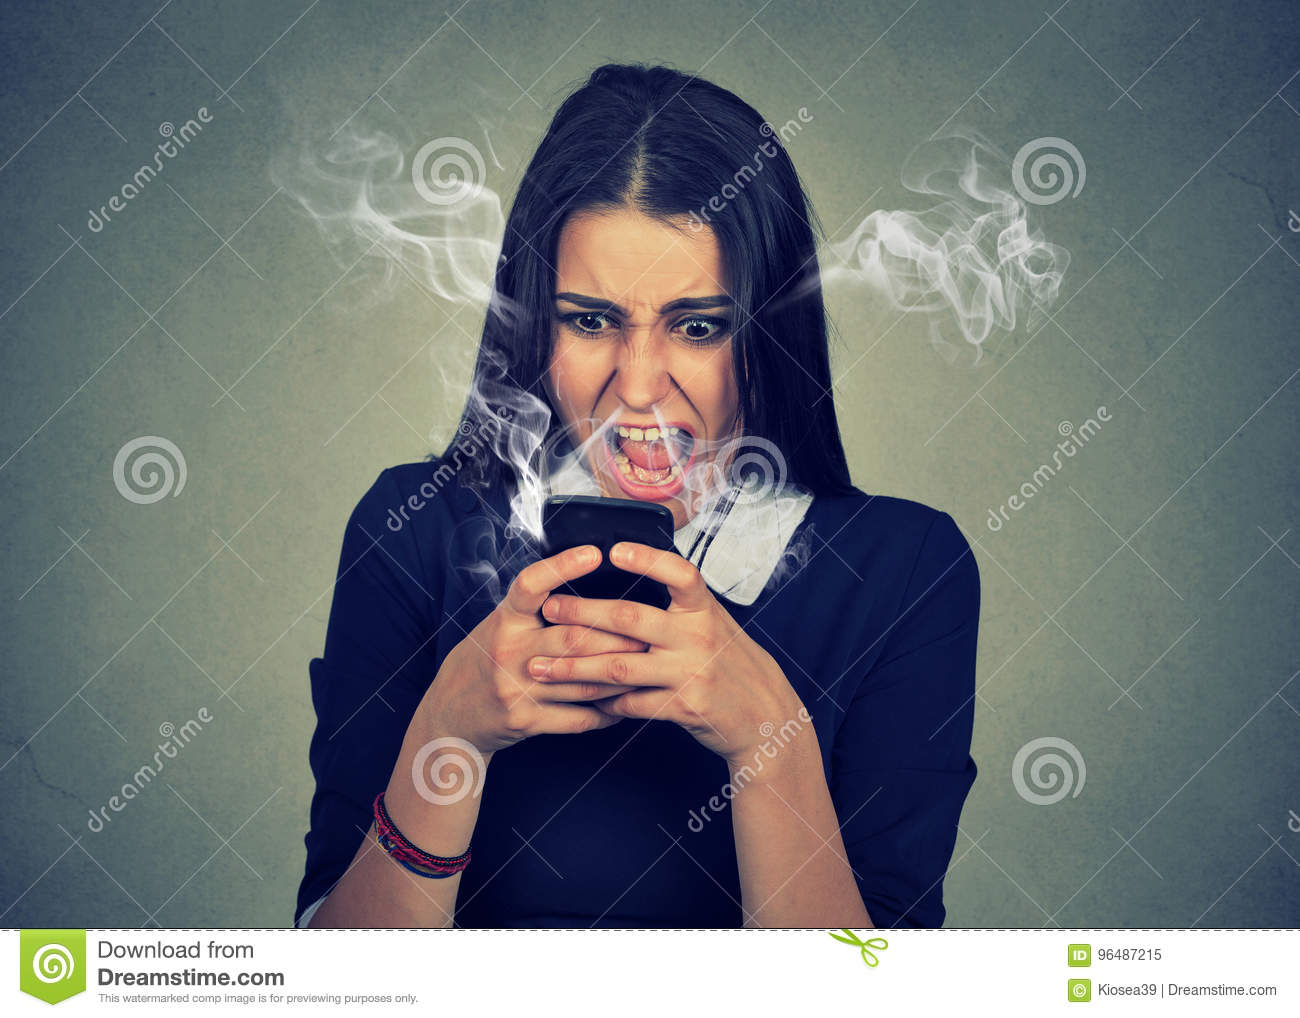 Angry woman shouting at her cell phone, enraged with bad service